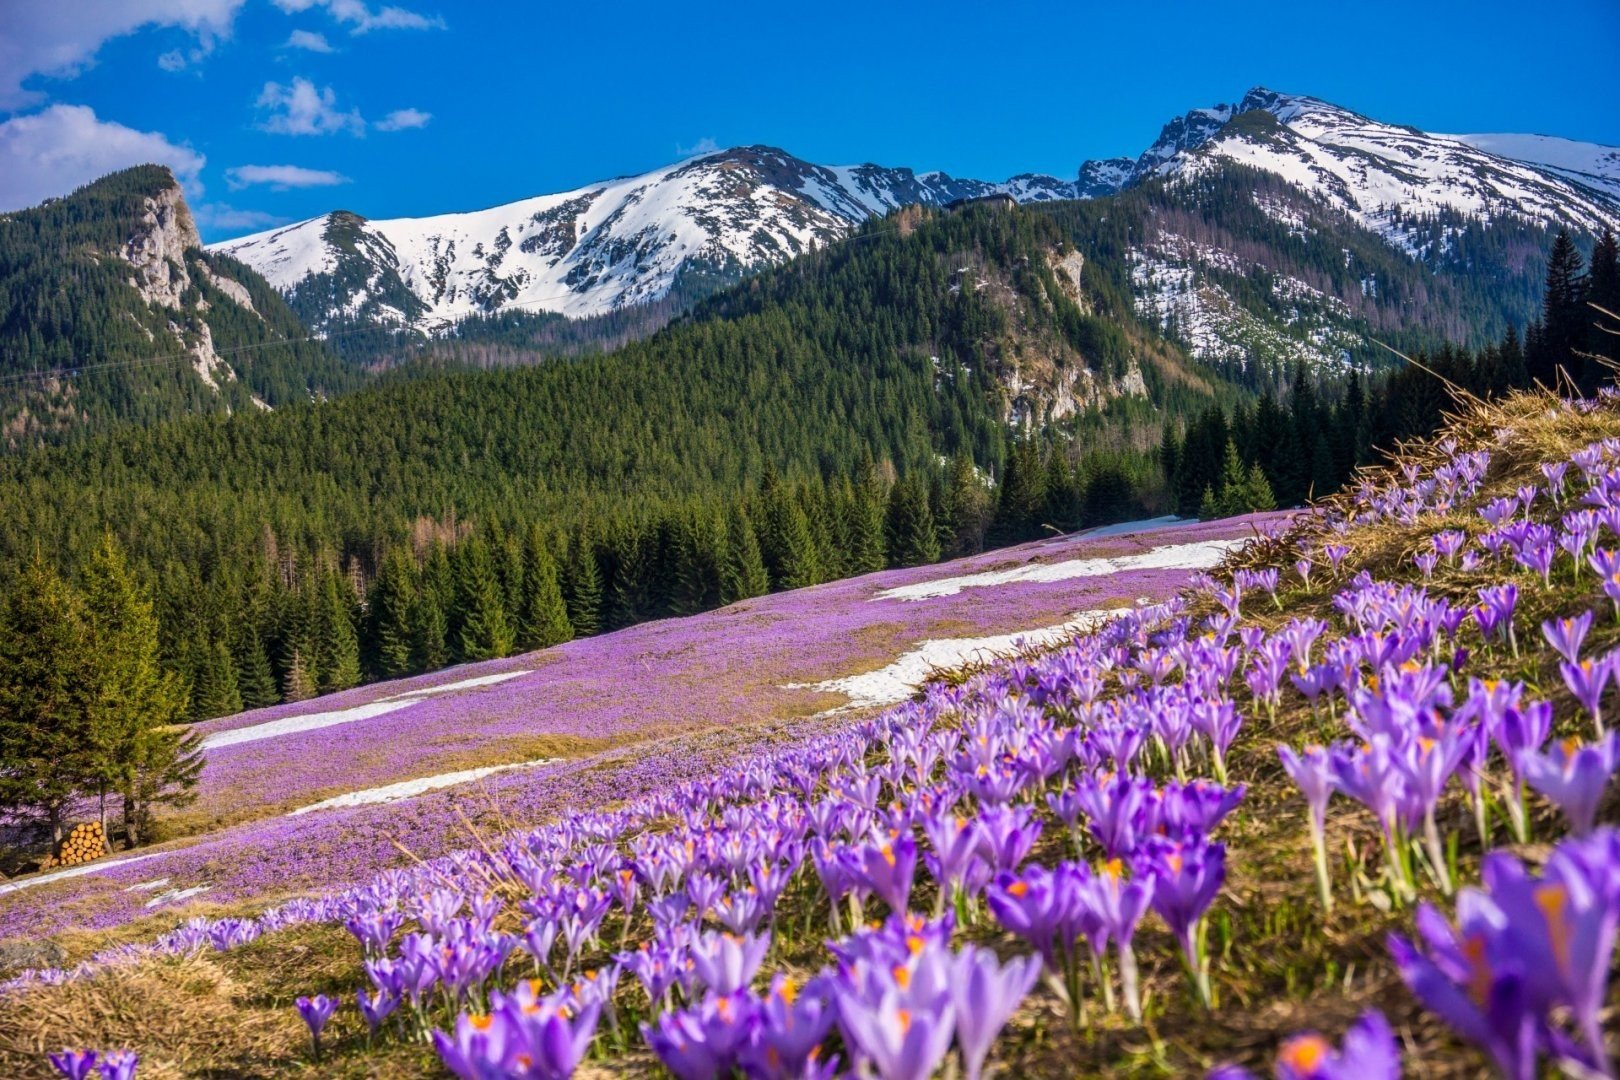 The best sites to welcome spring by ITS DMC Poland